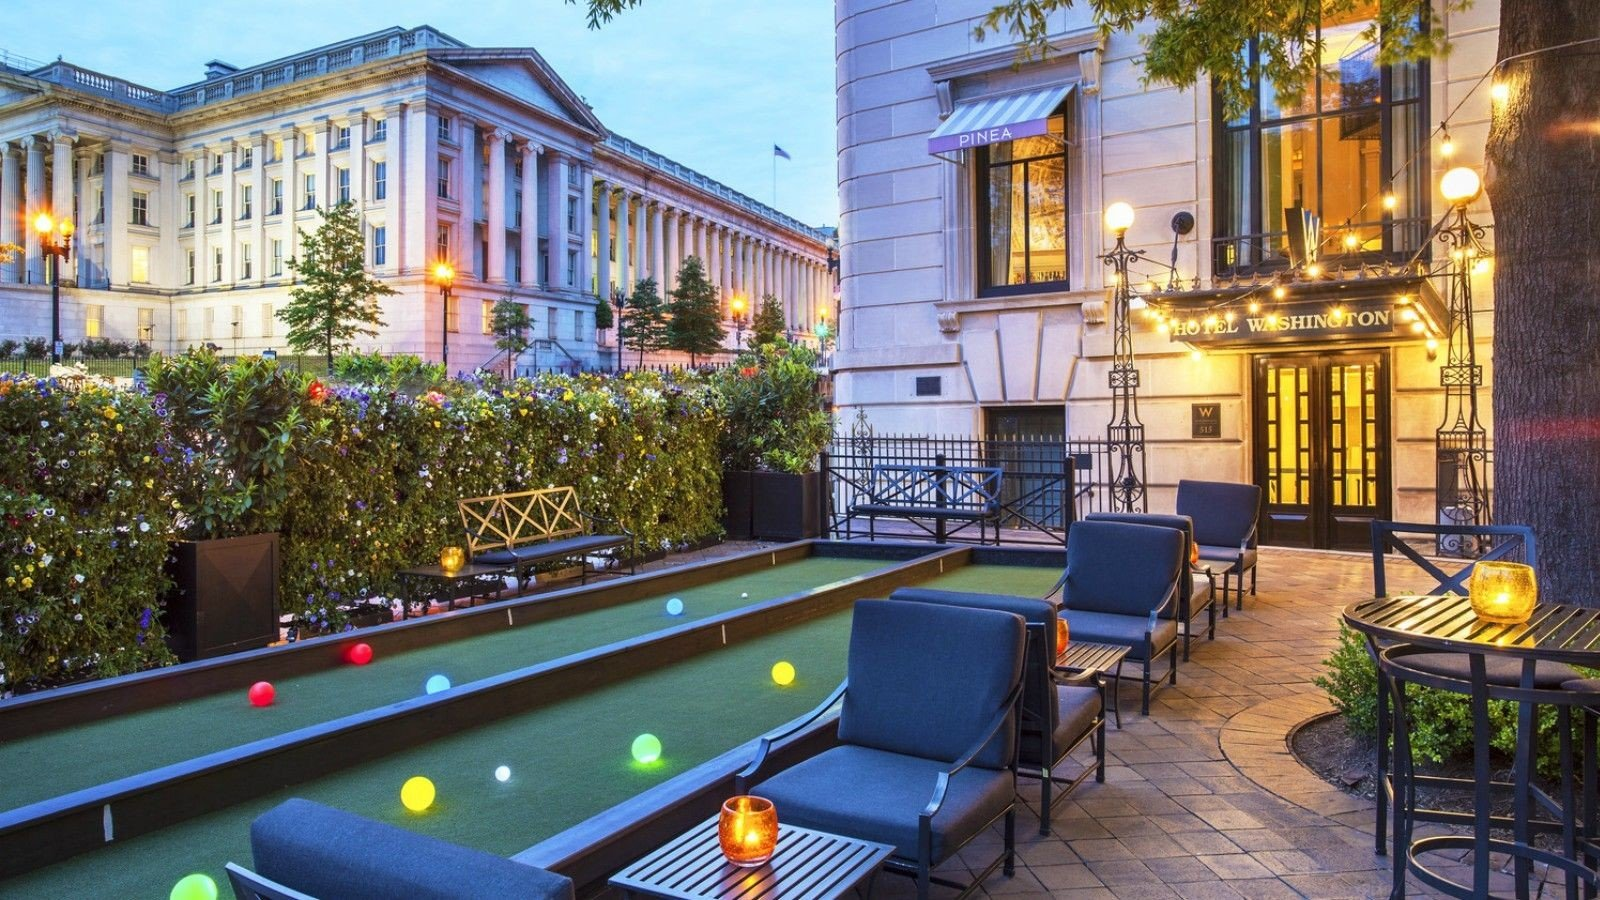 The 9 Best Hotels In D C